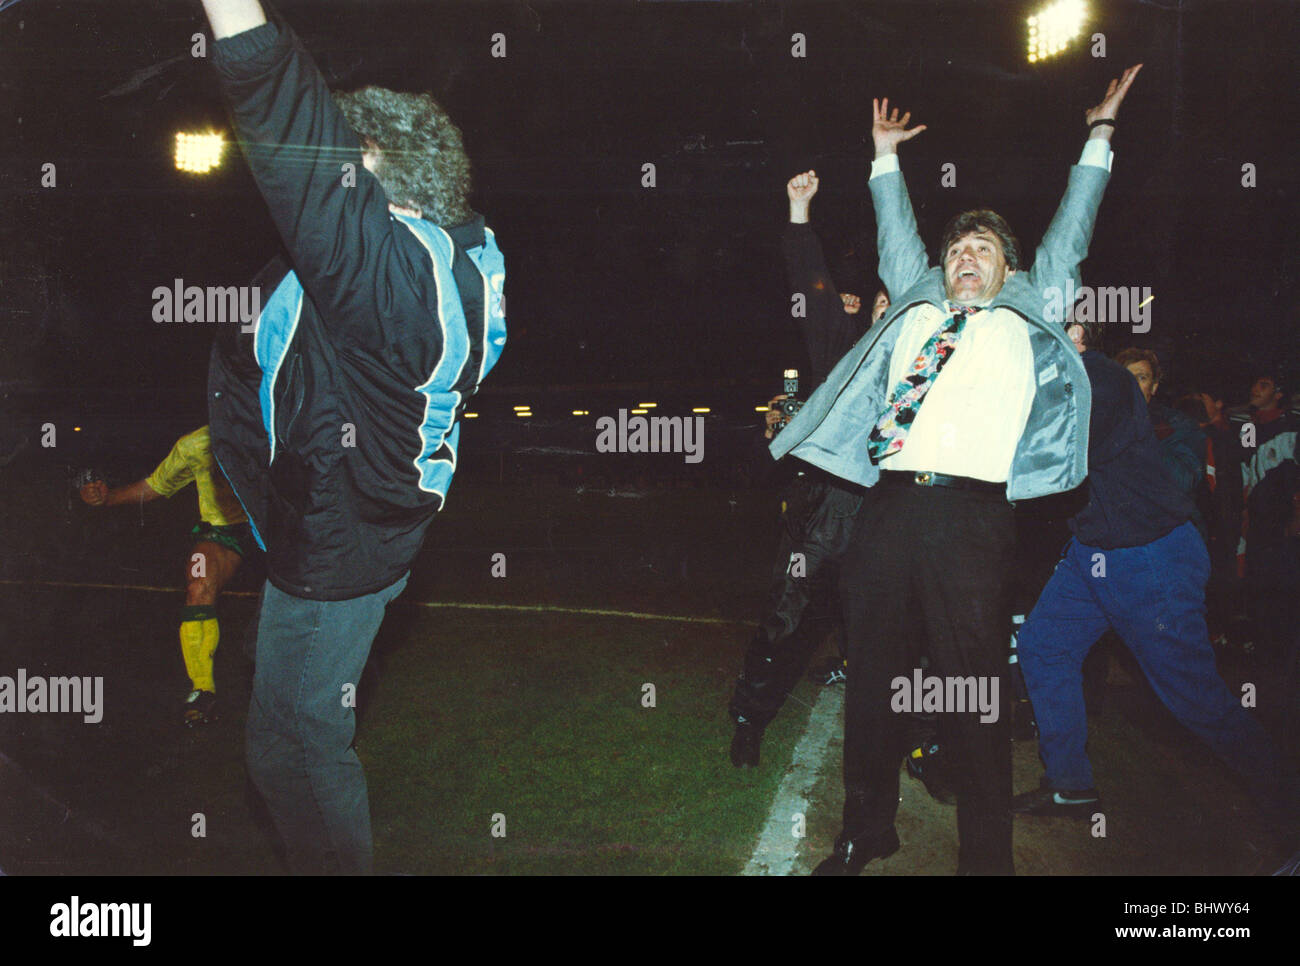 Newcastle United win the First Division at Grimsby - Kevin Keegan and Terry McDermott celebrate. Newcastle sealed - Stock Image